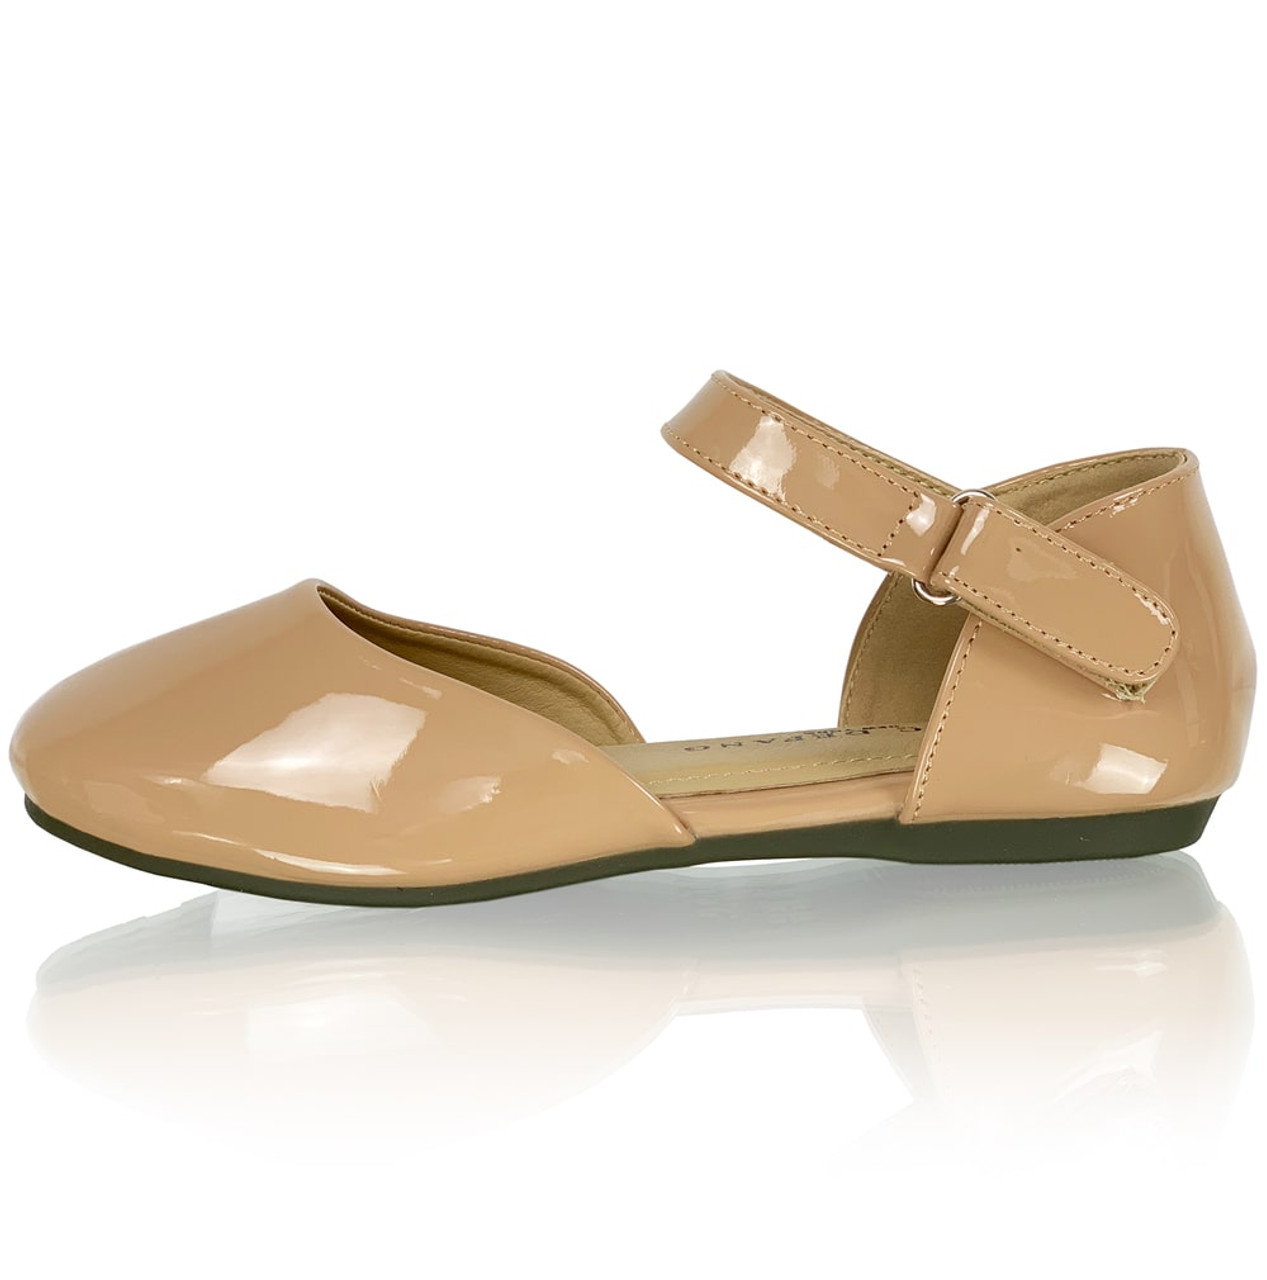 Mary Jane Sandal Flats